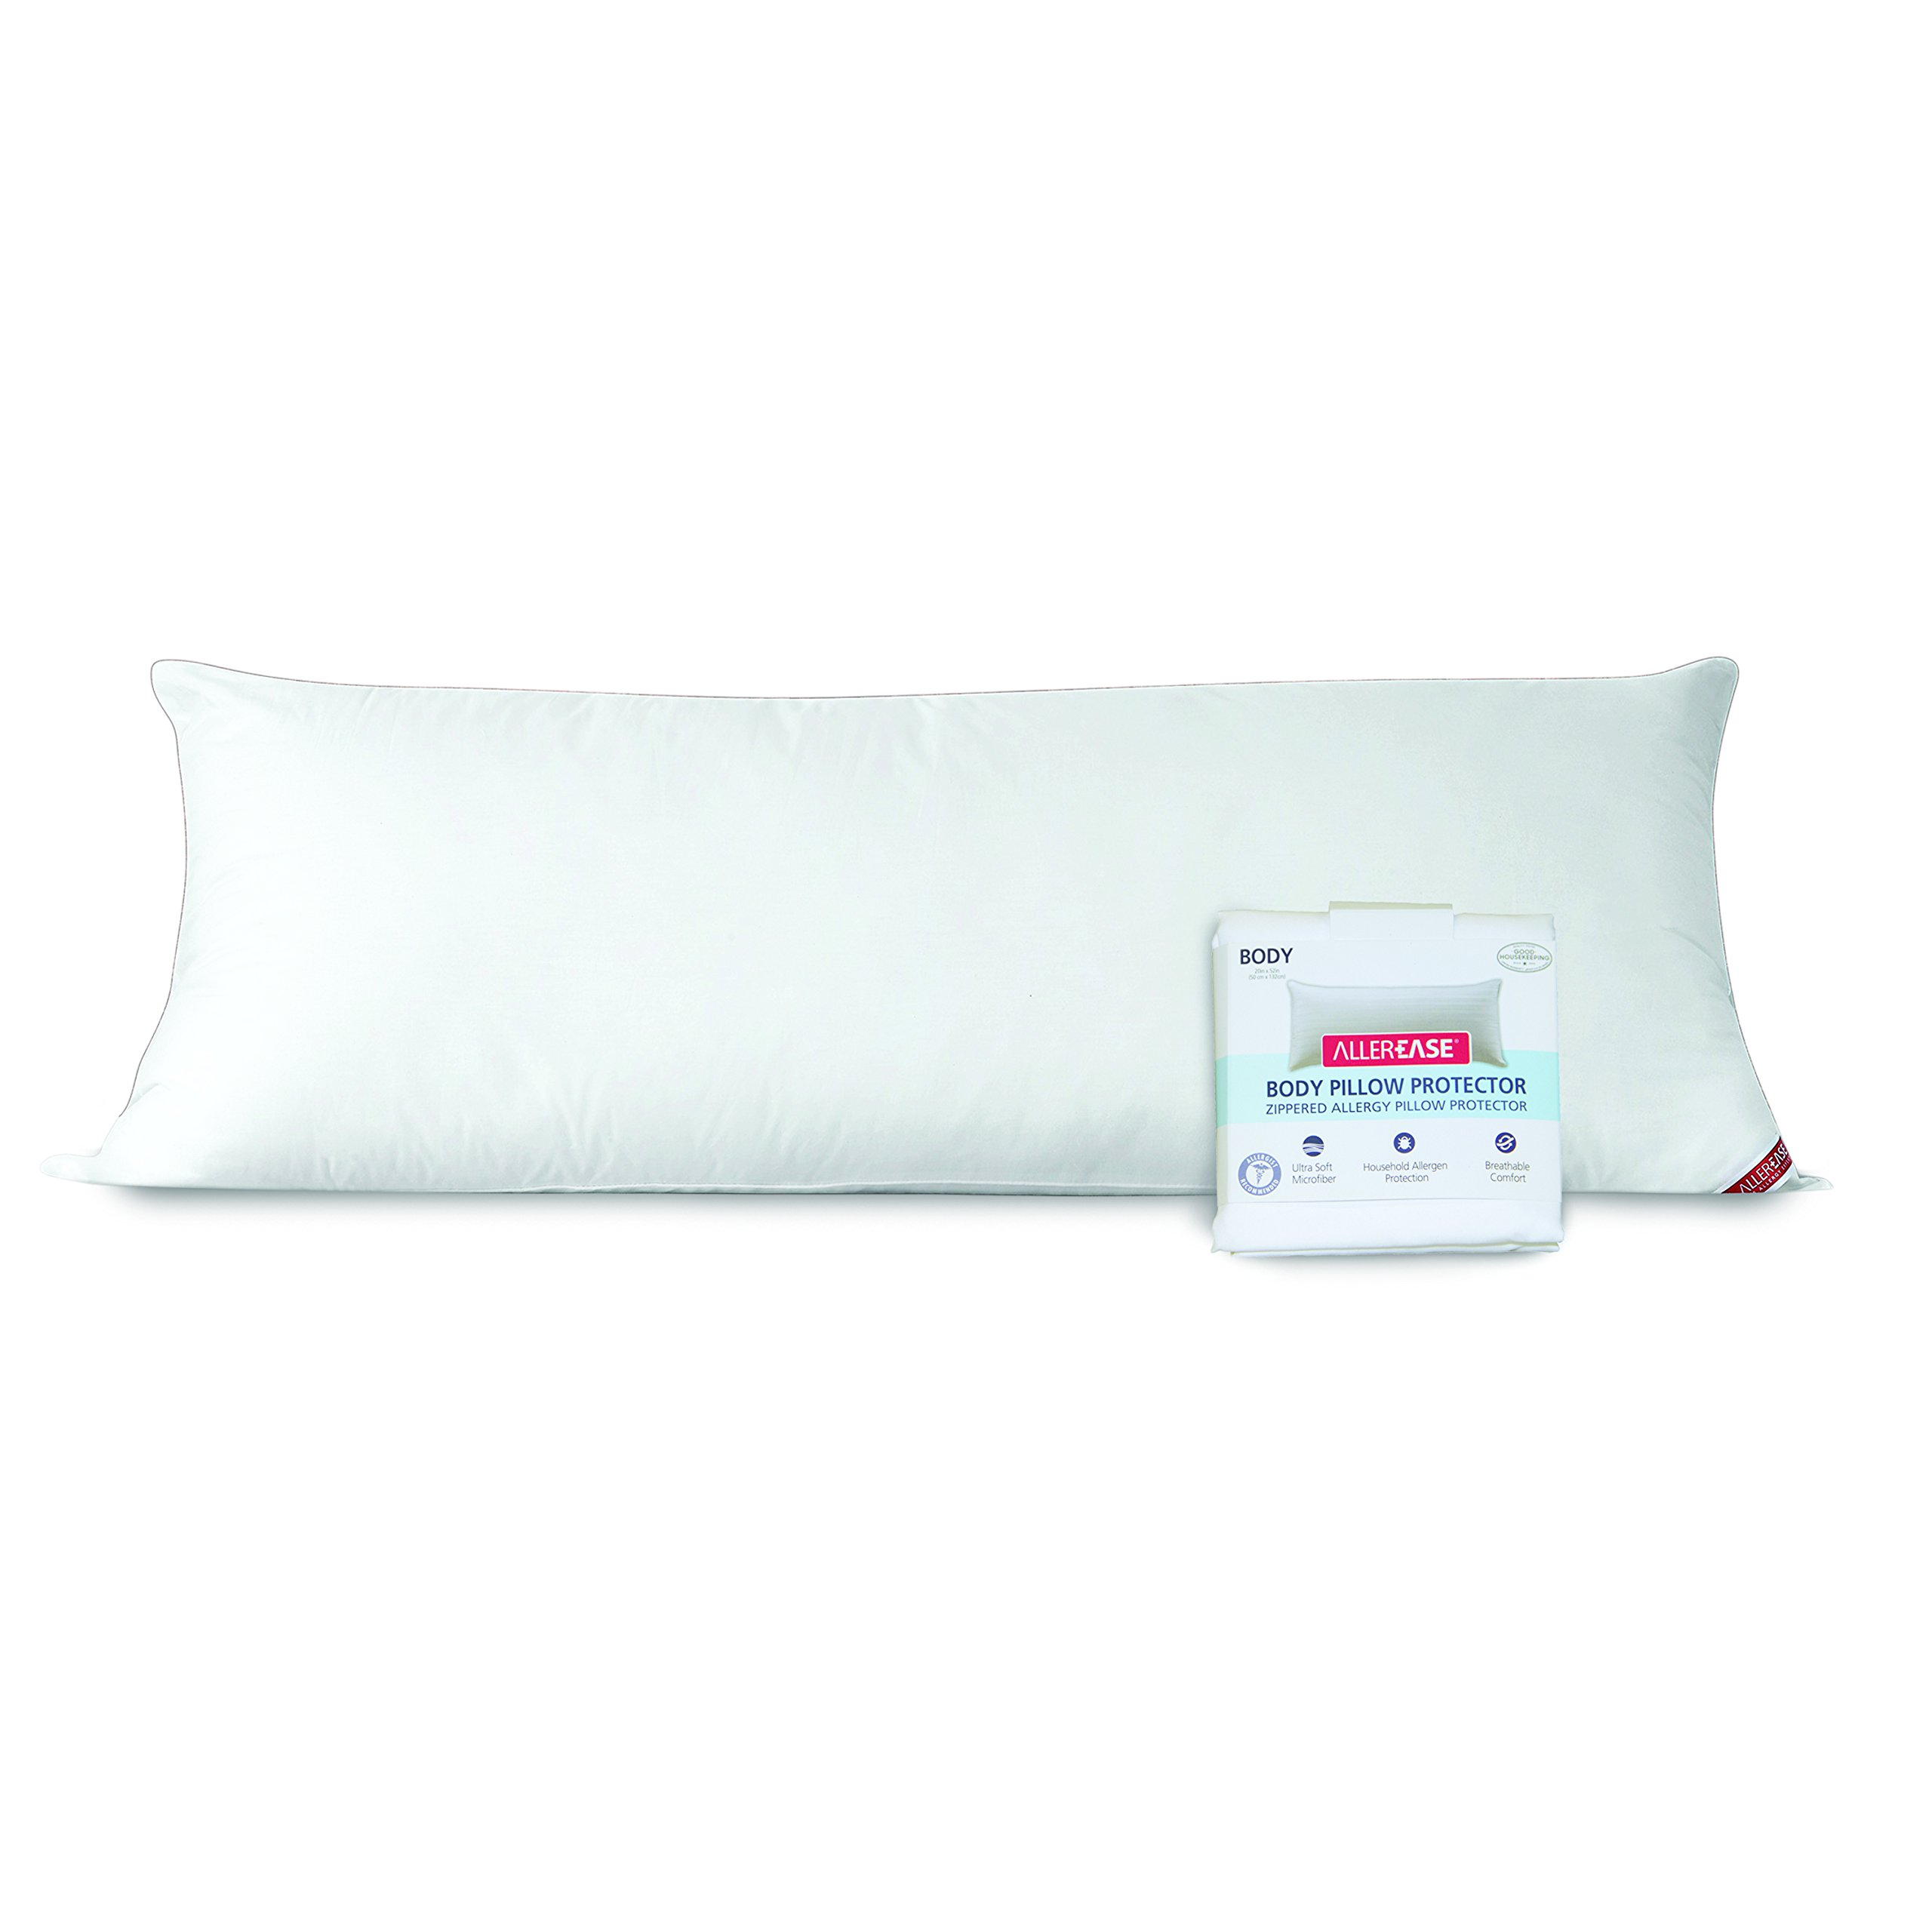 AllerEase Cotton Hypoallergenic Allergy Protection Body Pillow with Zippered Body Pillow Cover, 20'' x 54'' - White by Aller-Ease